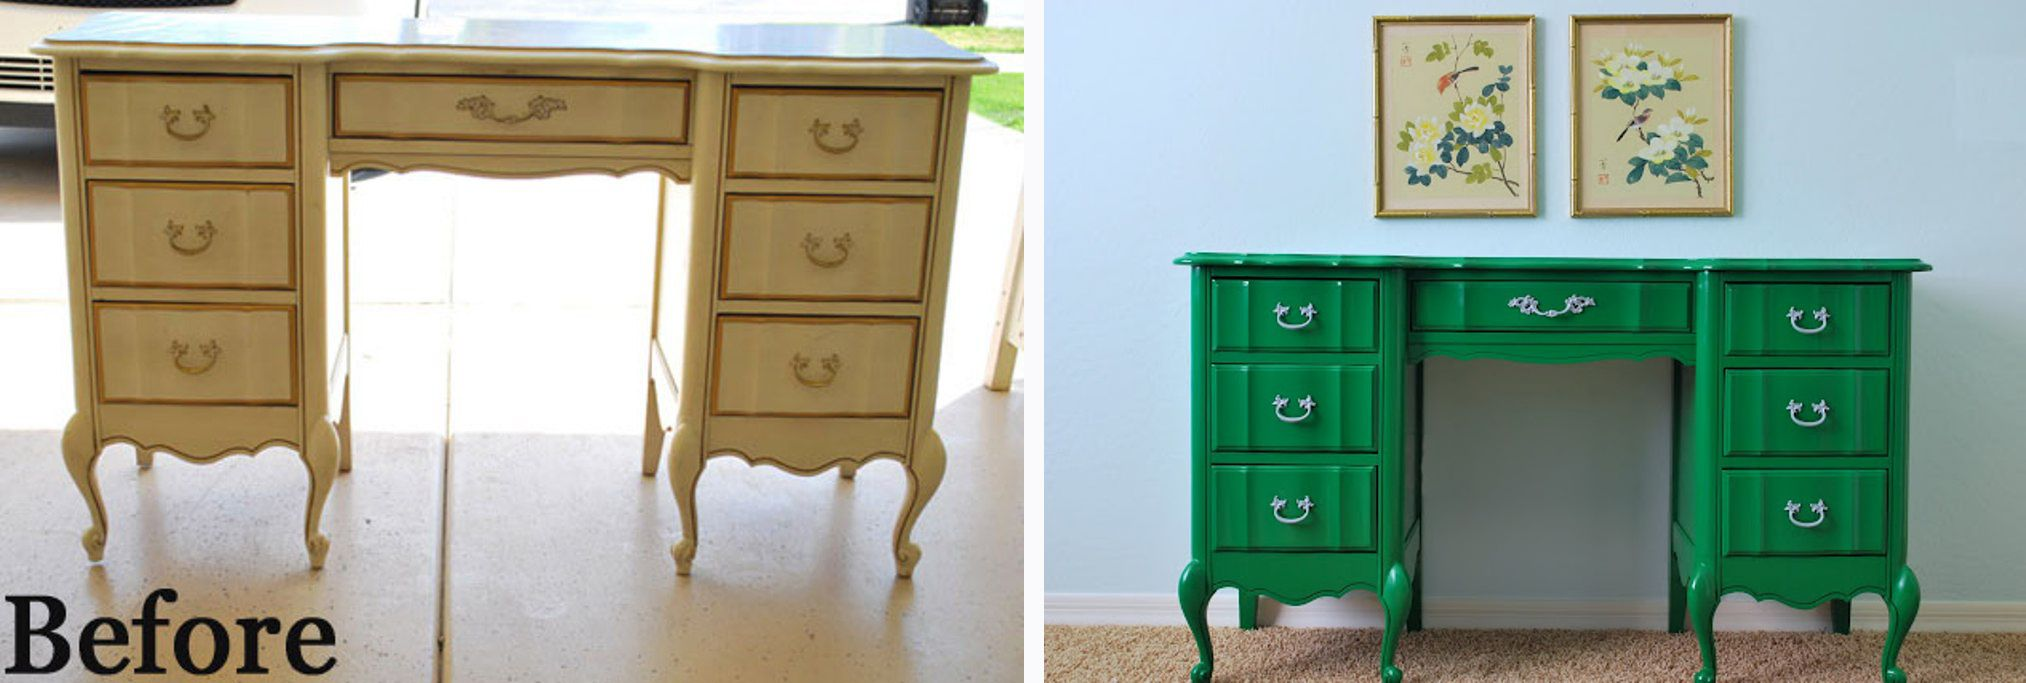 Painting furniture before and after - Latest Images About Painted Furniture U Accents On Pinterest Hale With Green Painted Furniture